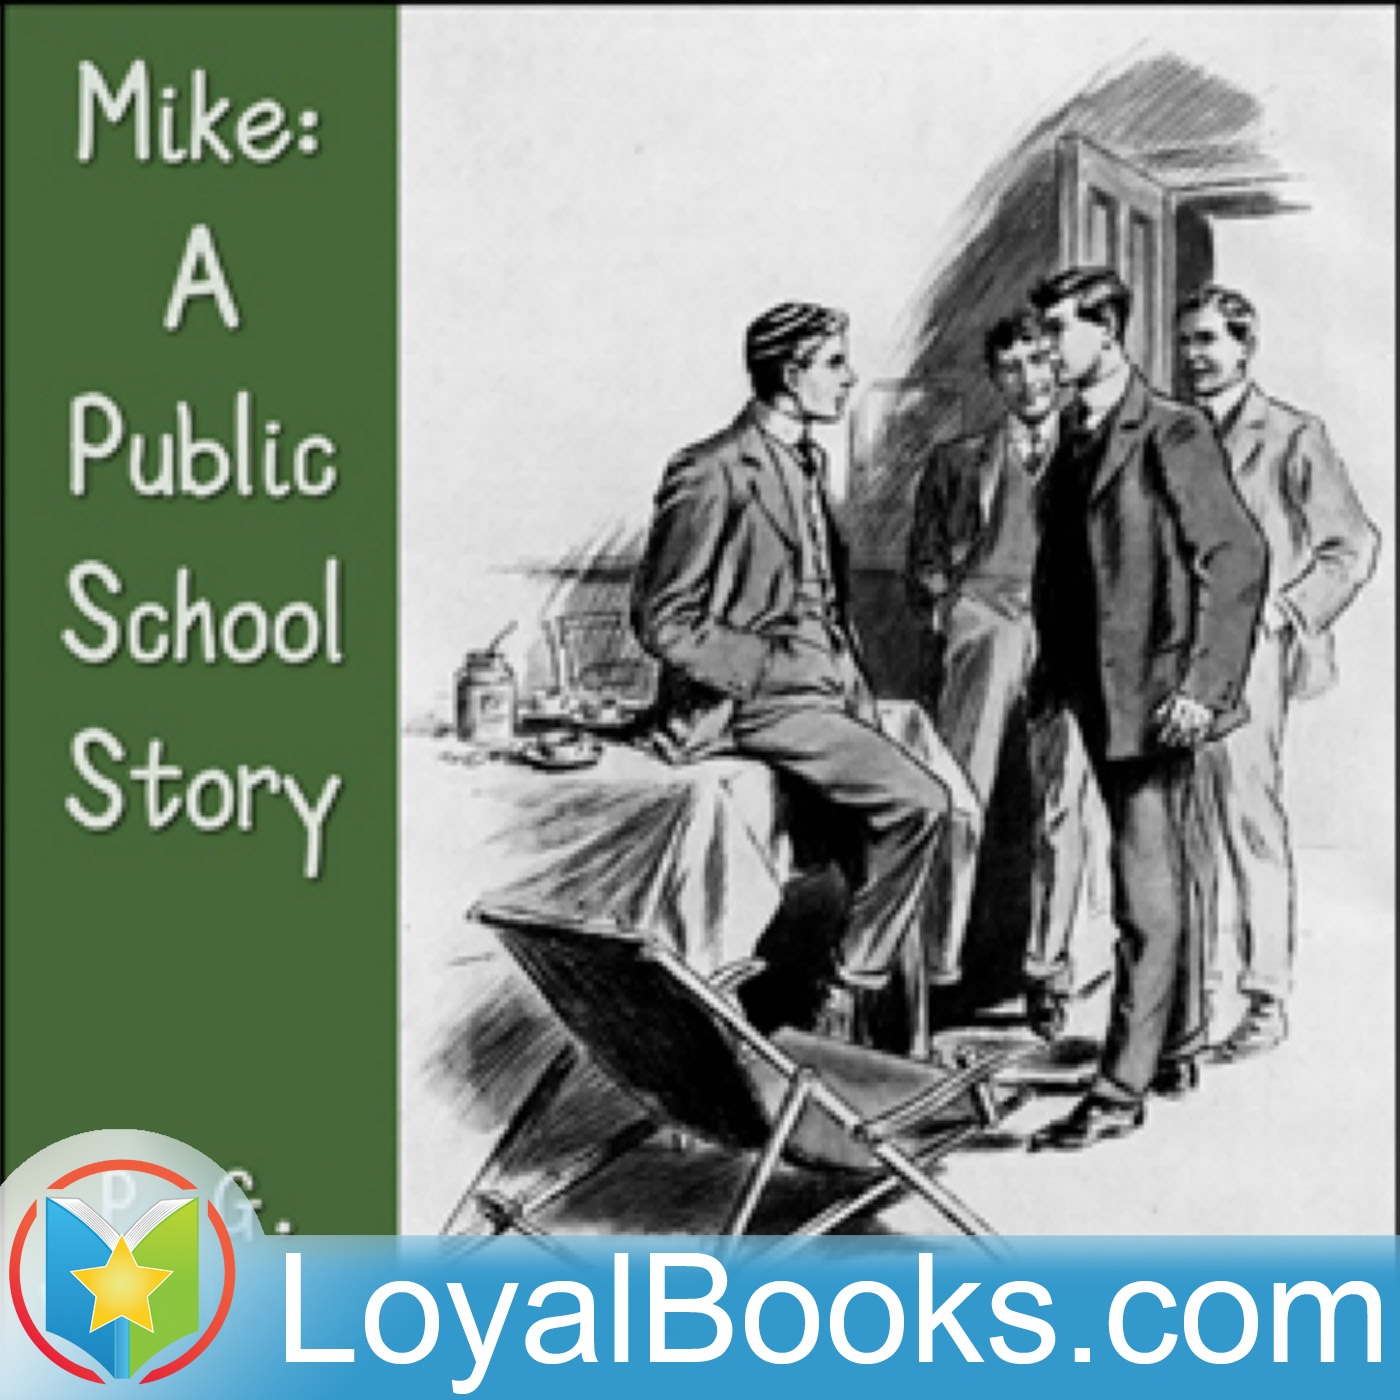 <![CDATA[Mike: A Public School Story by P. G. Wodehouse]]>